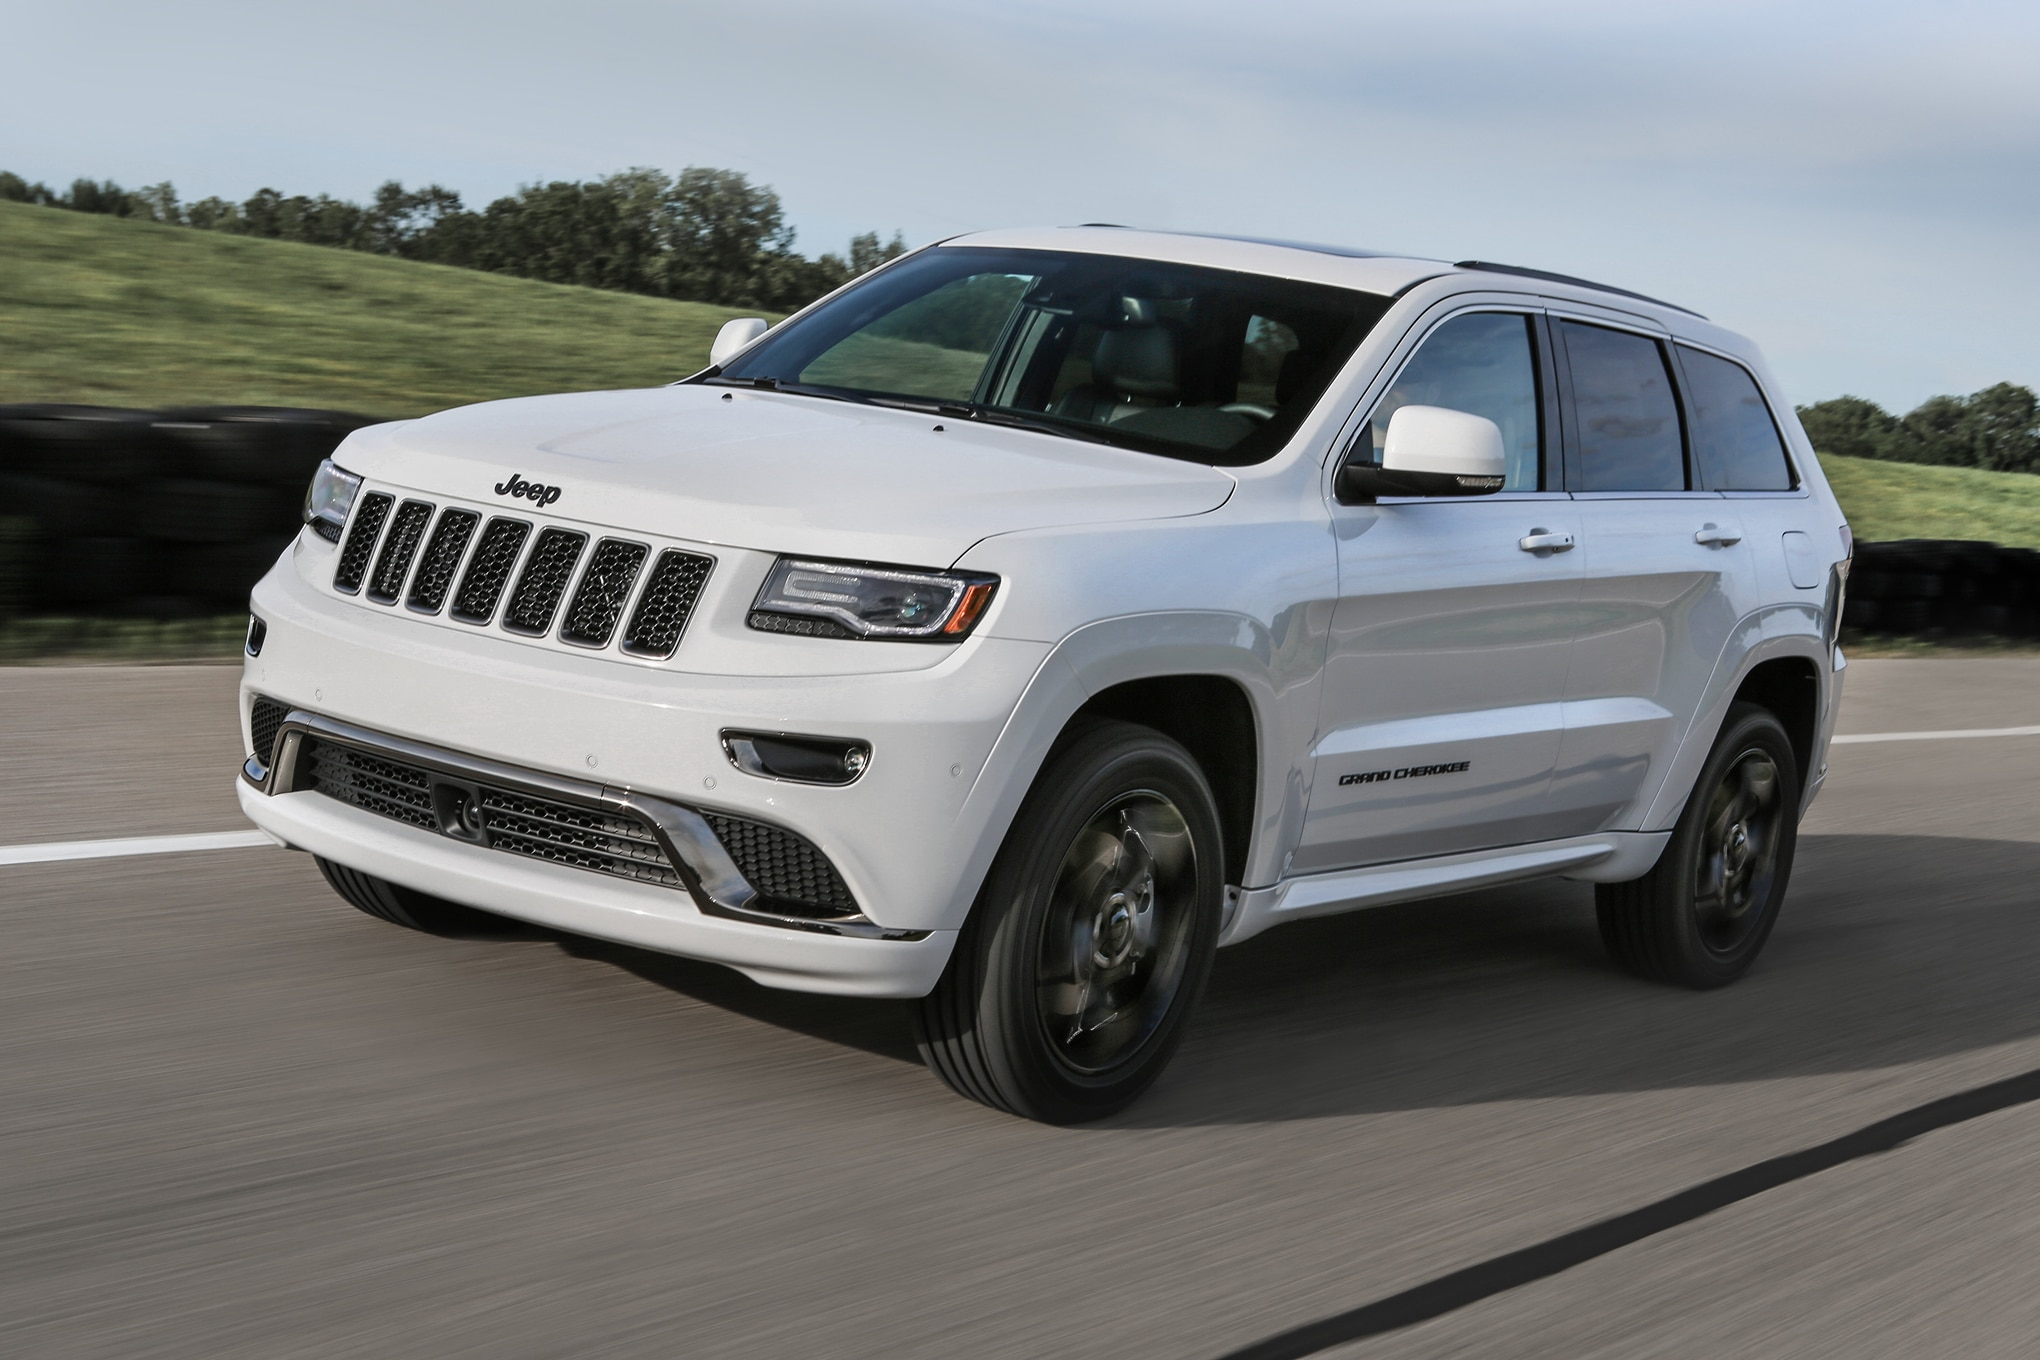 2016 jeep grand cherokee improves mpg adds engine stop start 19 publicscrutiny Choice Image